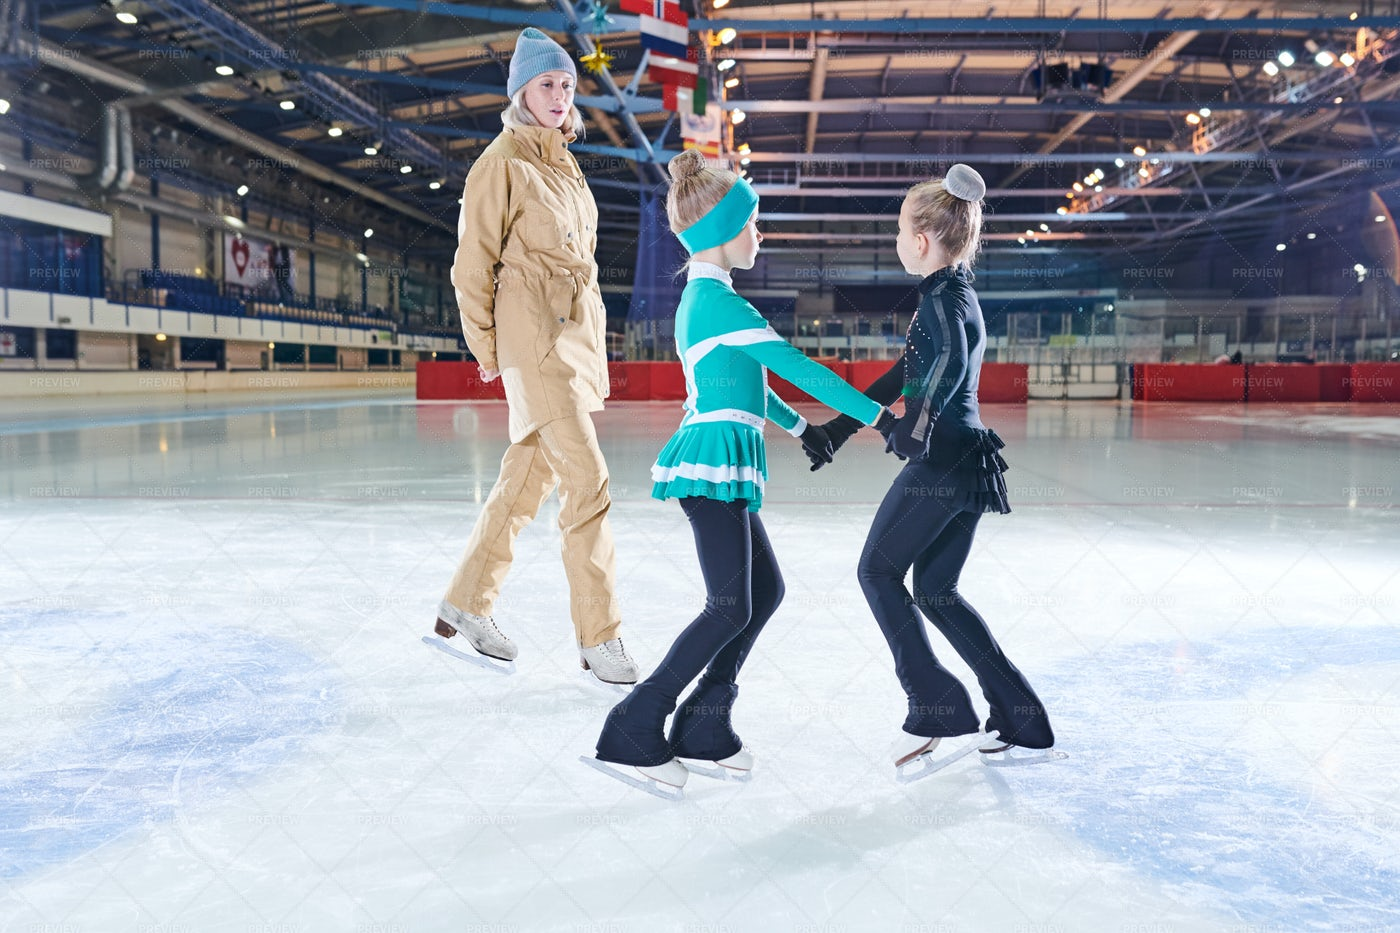 Two Girls Figure Skating Together: Stock Photos